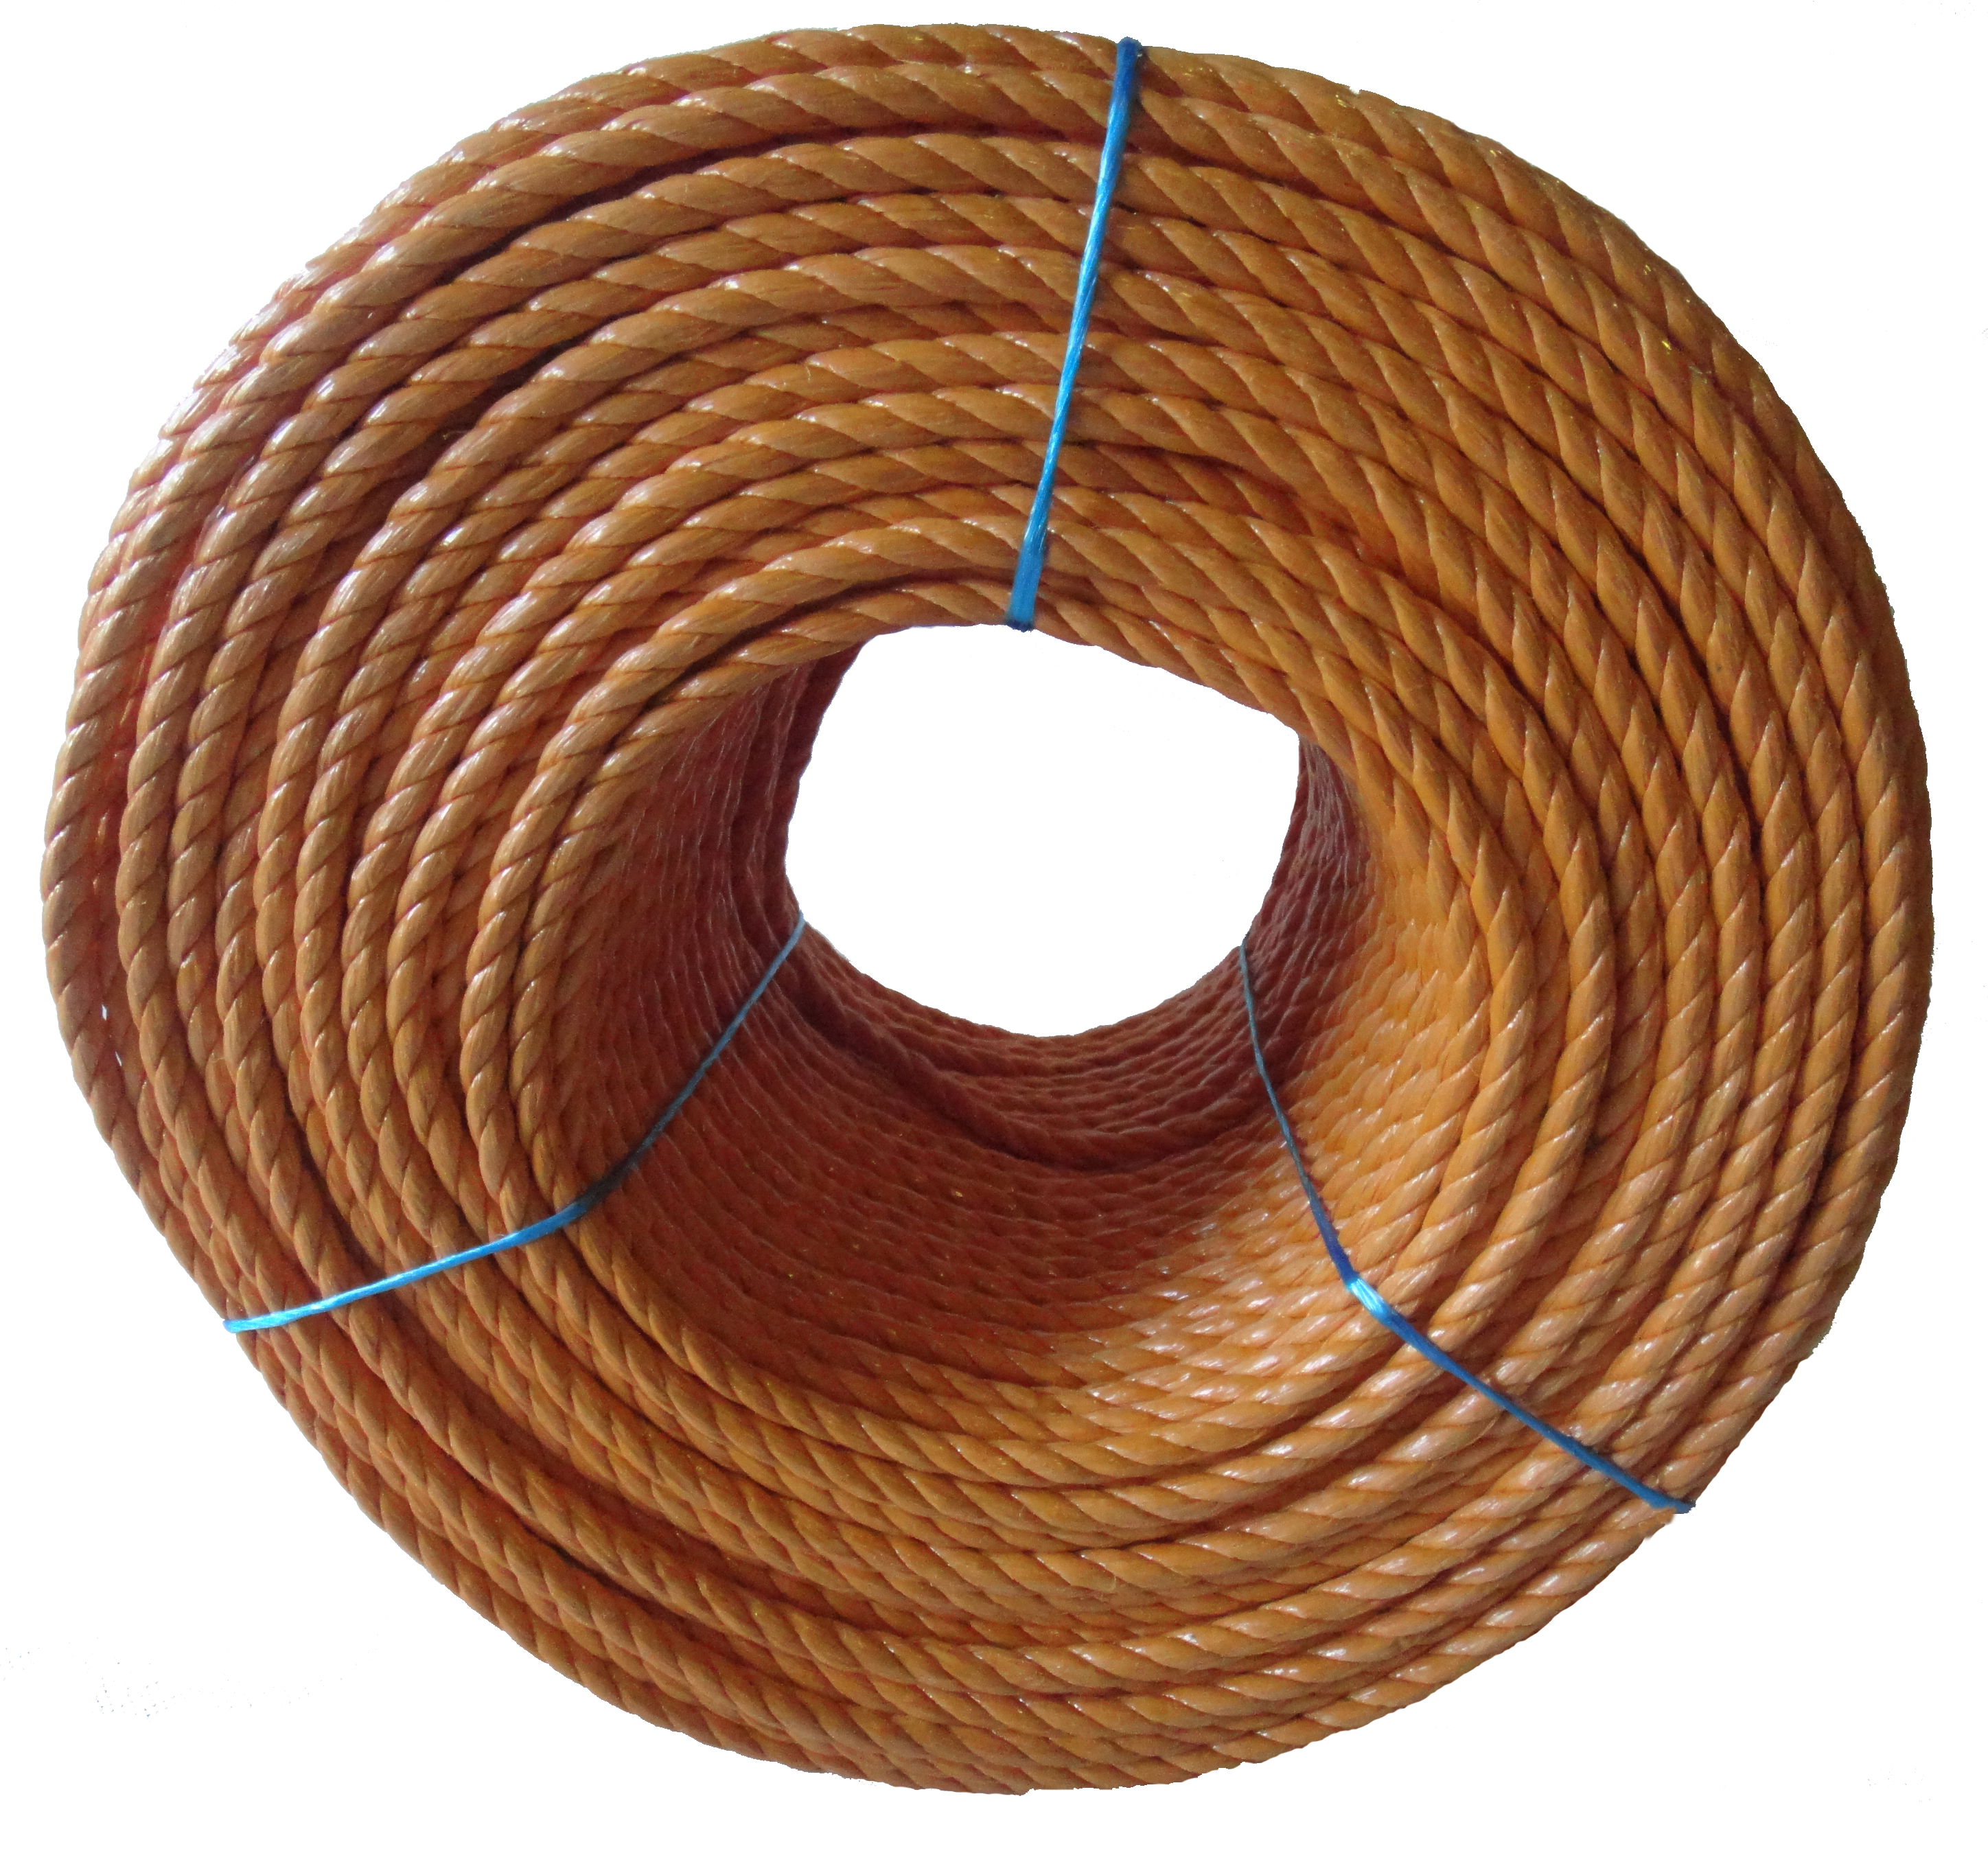 Polypropylene rope - 8mm Dia Orange x 100m Mini Coil